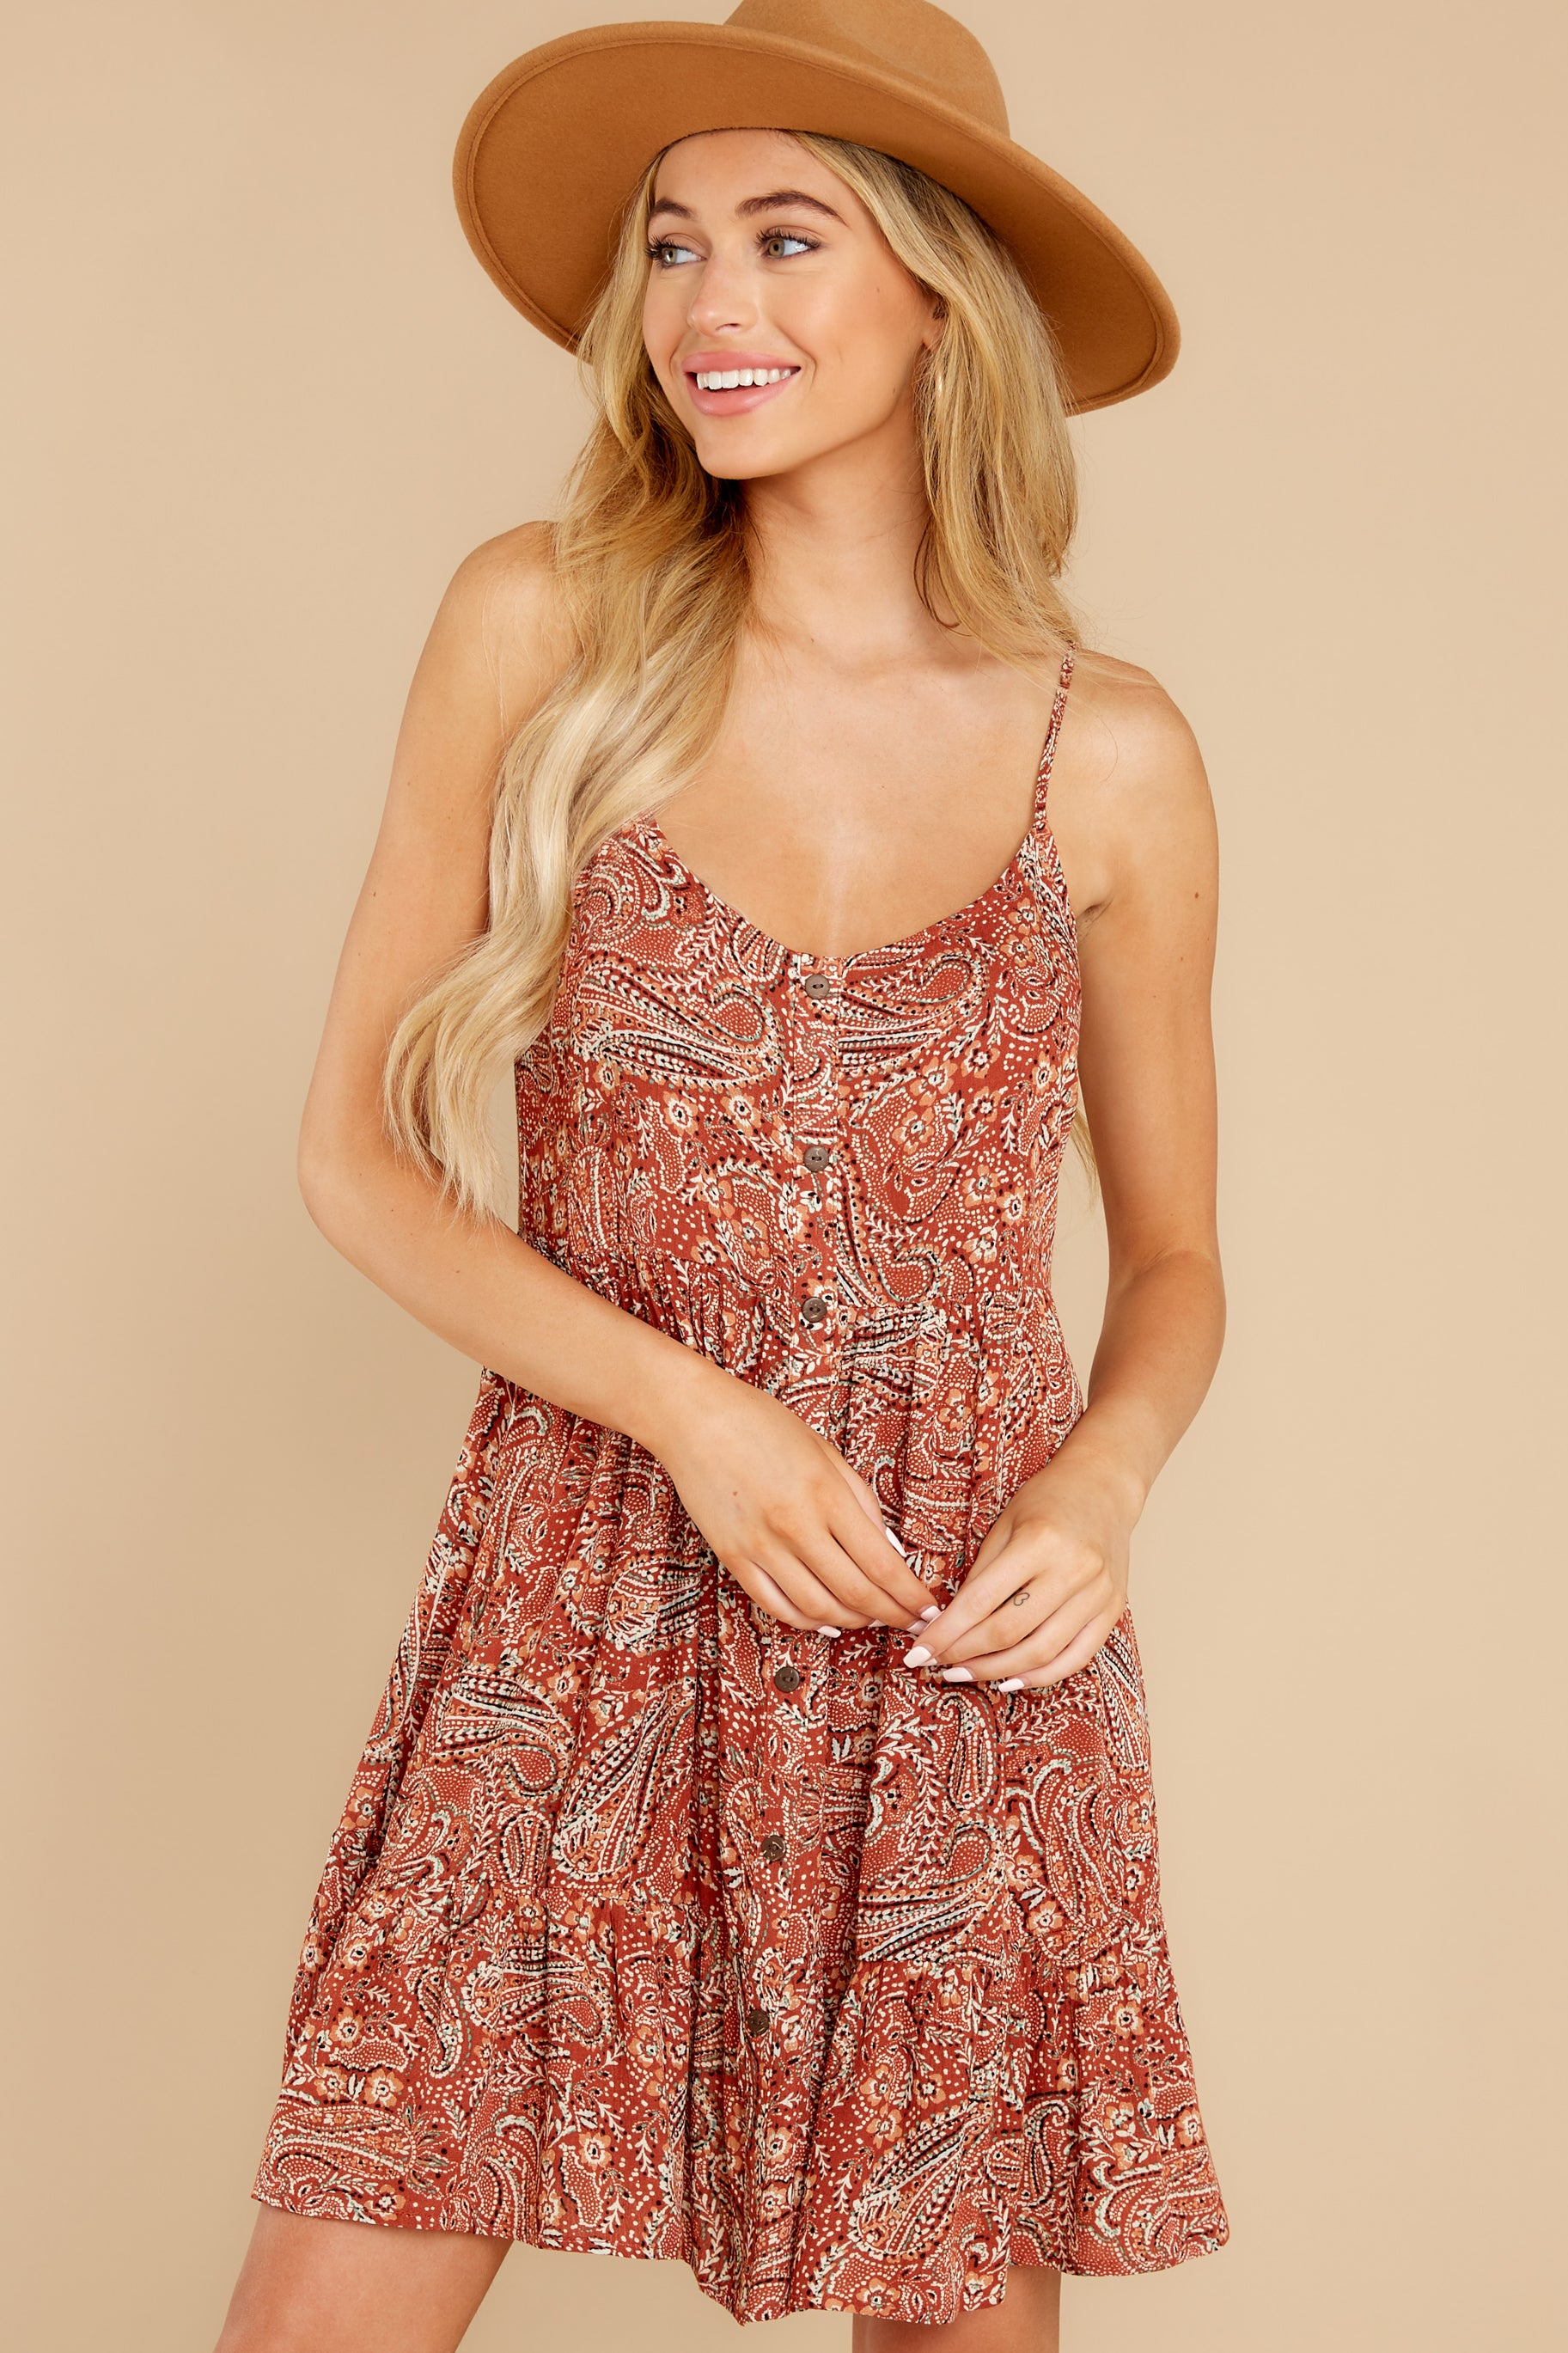 8 On Second Thought Rust Print Dress at reddress.com